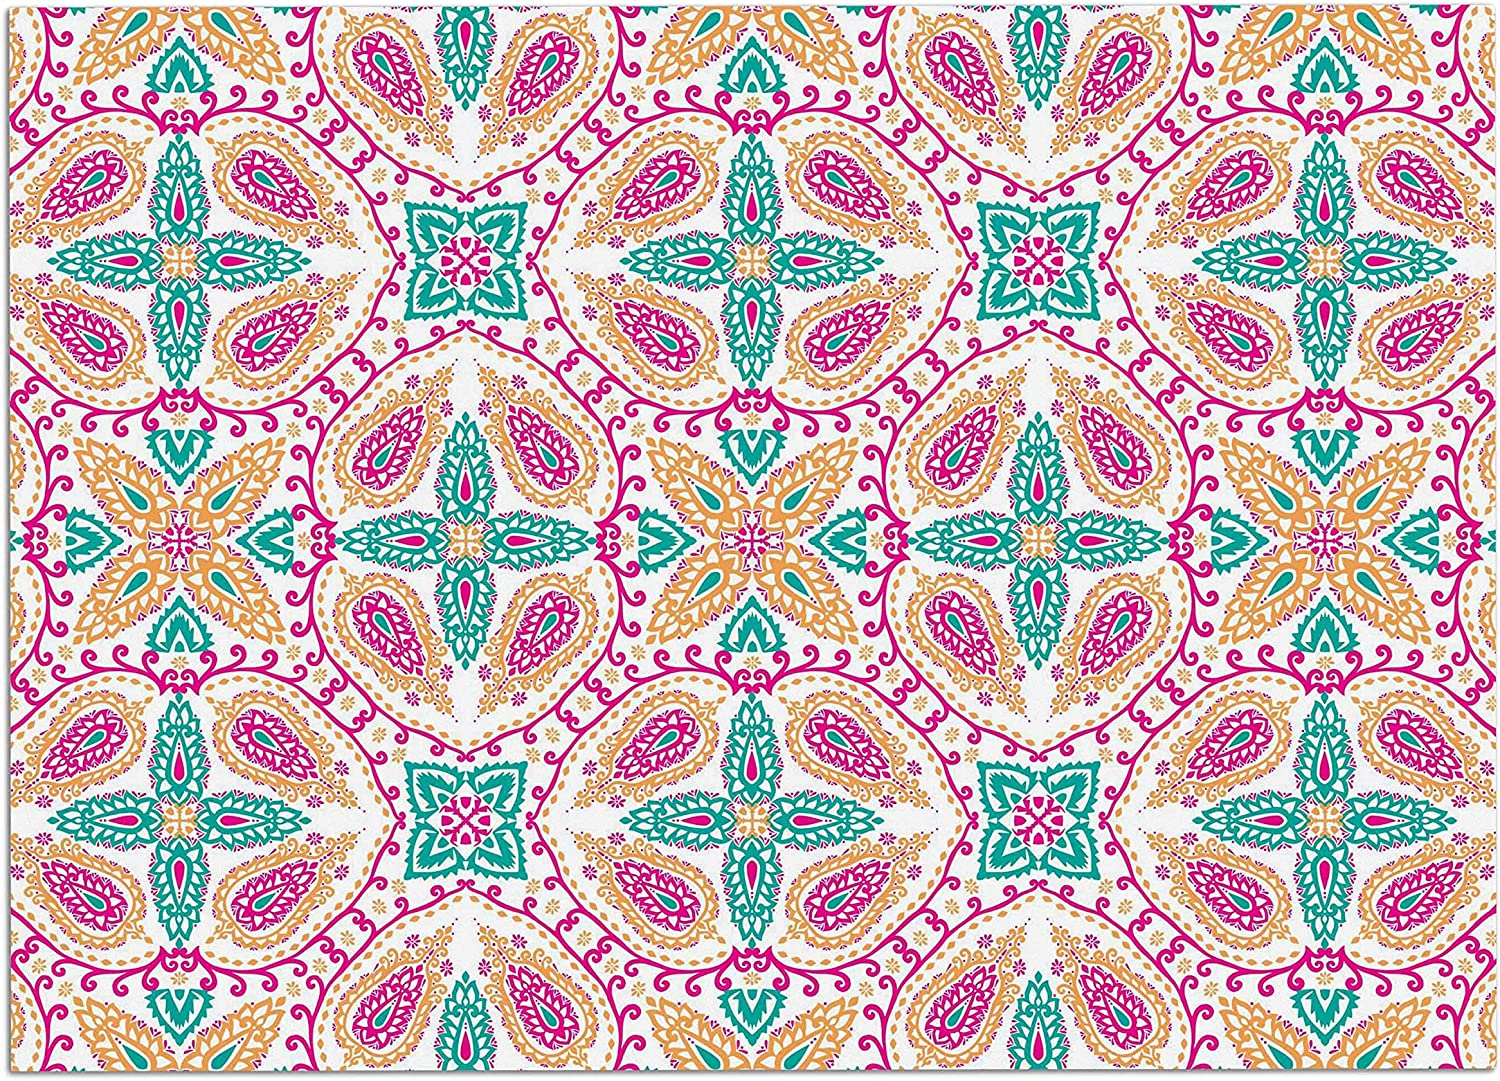 KESS InHouse NS2044ADM02 Nandita Singh Boho in Multicolor Pink Abstract Dog Place Mat, 24  x 15